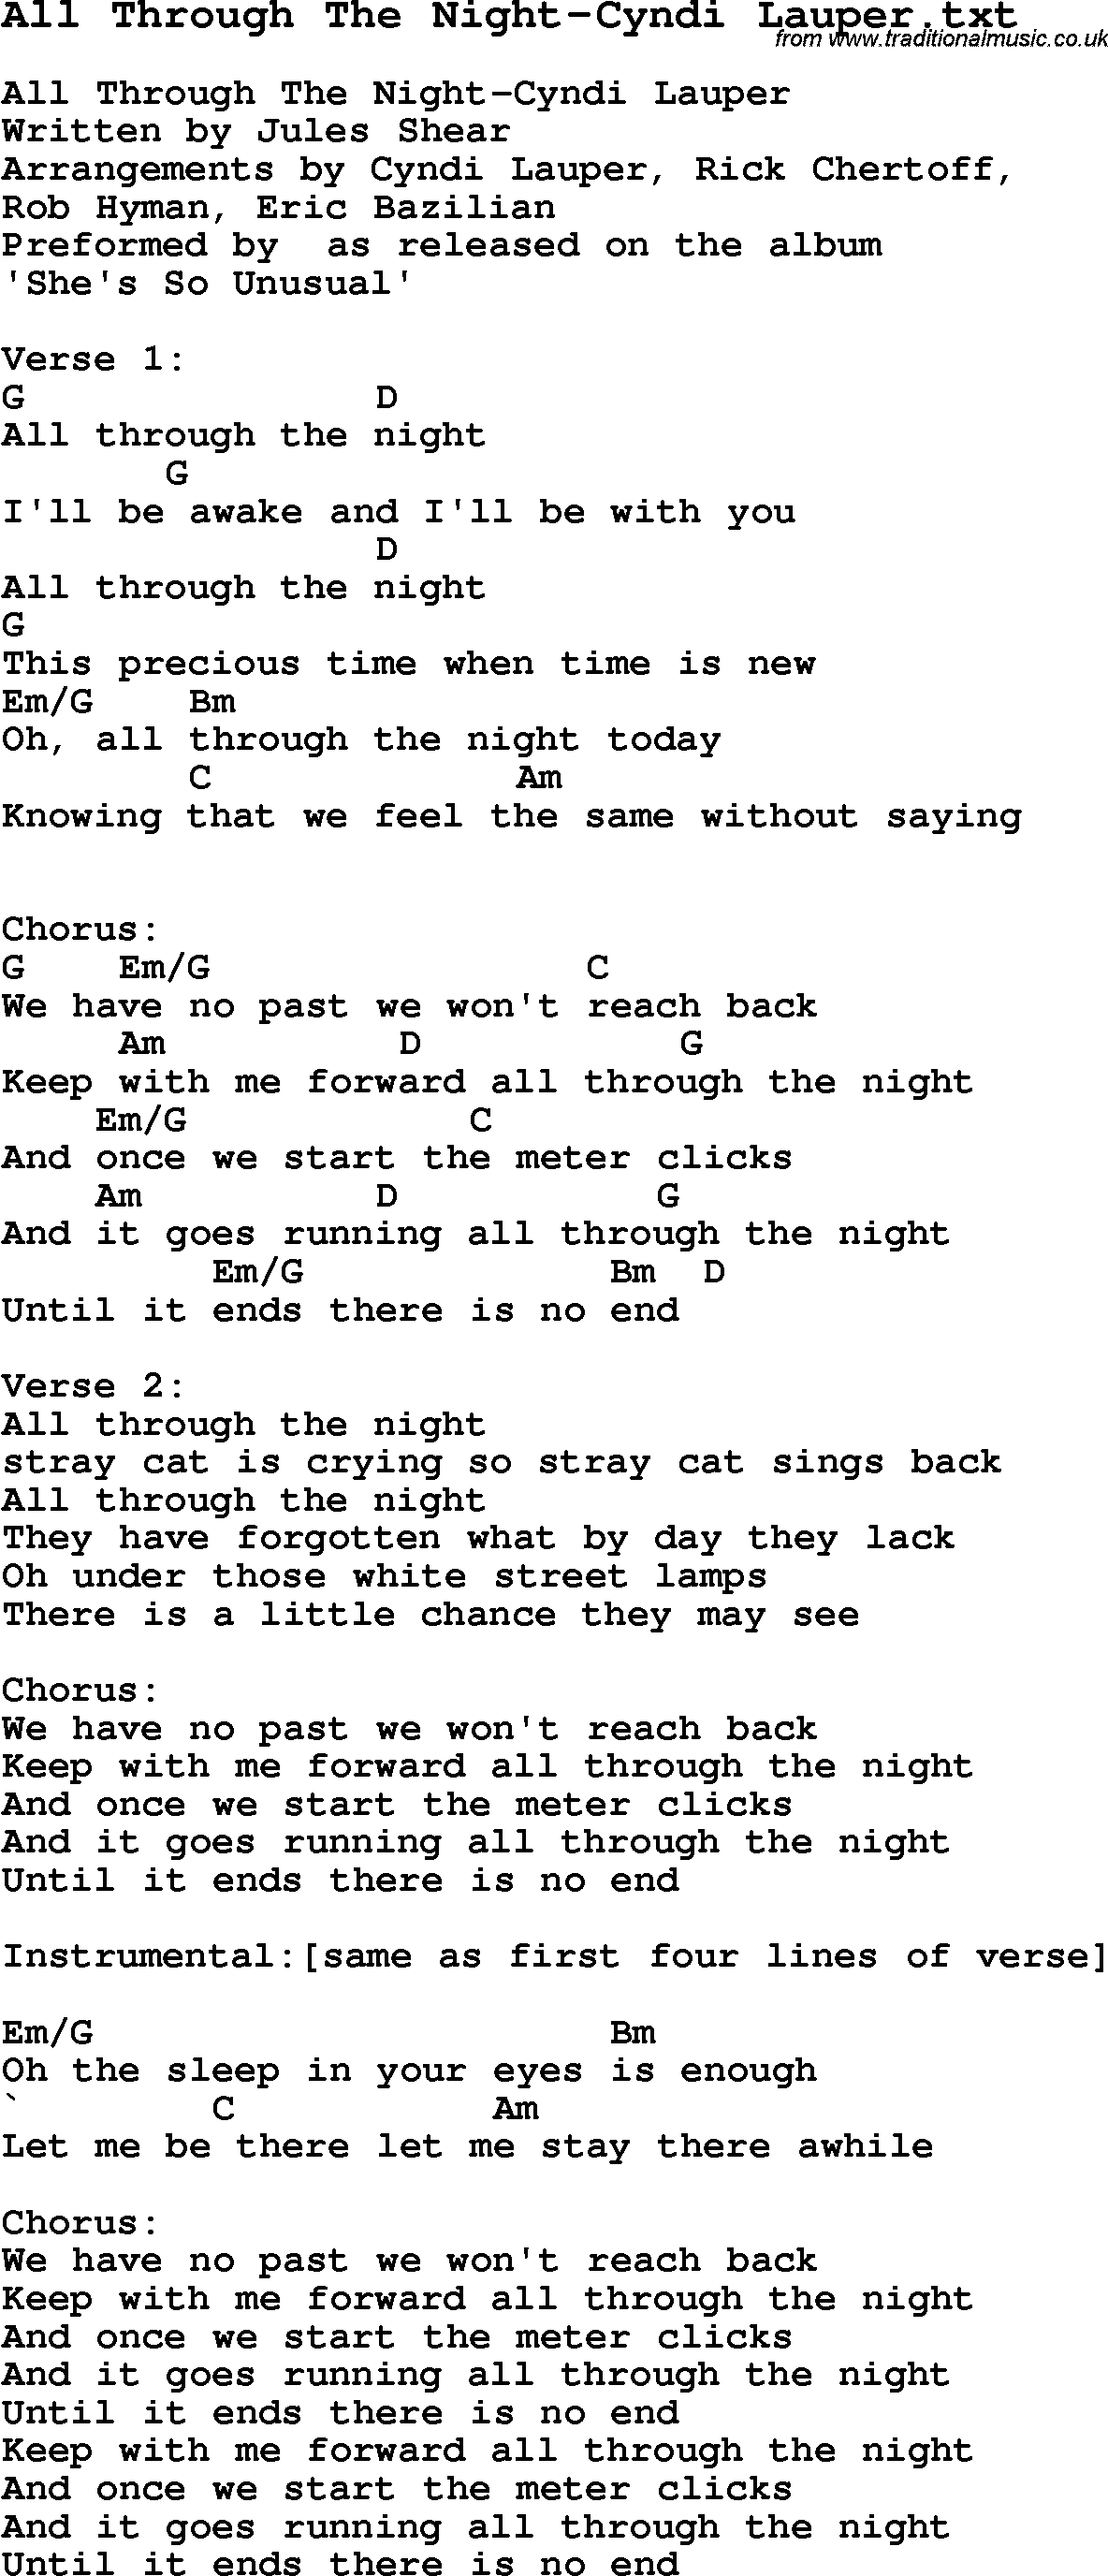 Jazz Song - All Through The Night-Cyndi Lauper with Chords